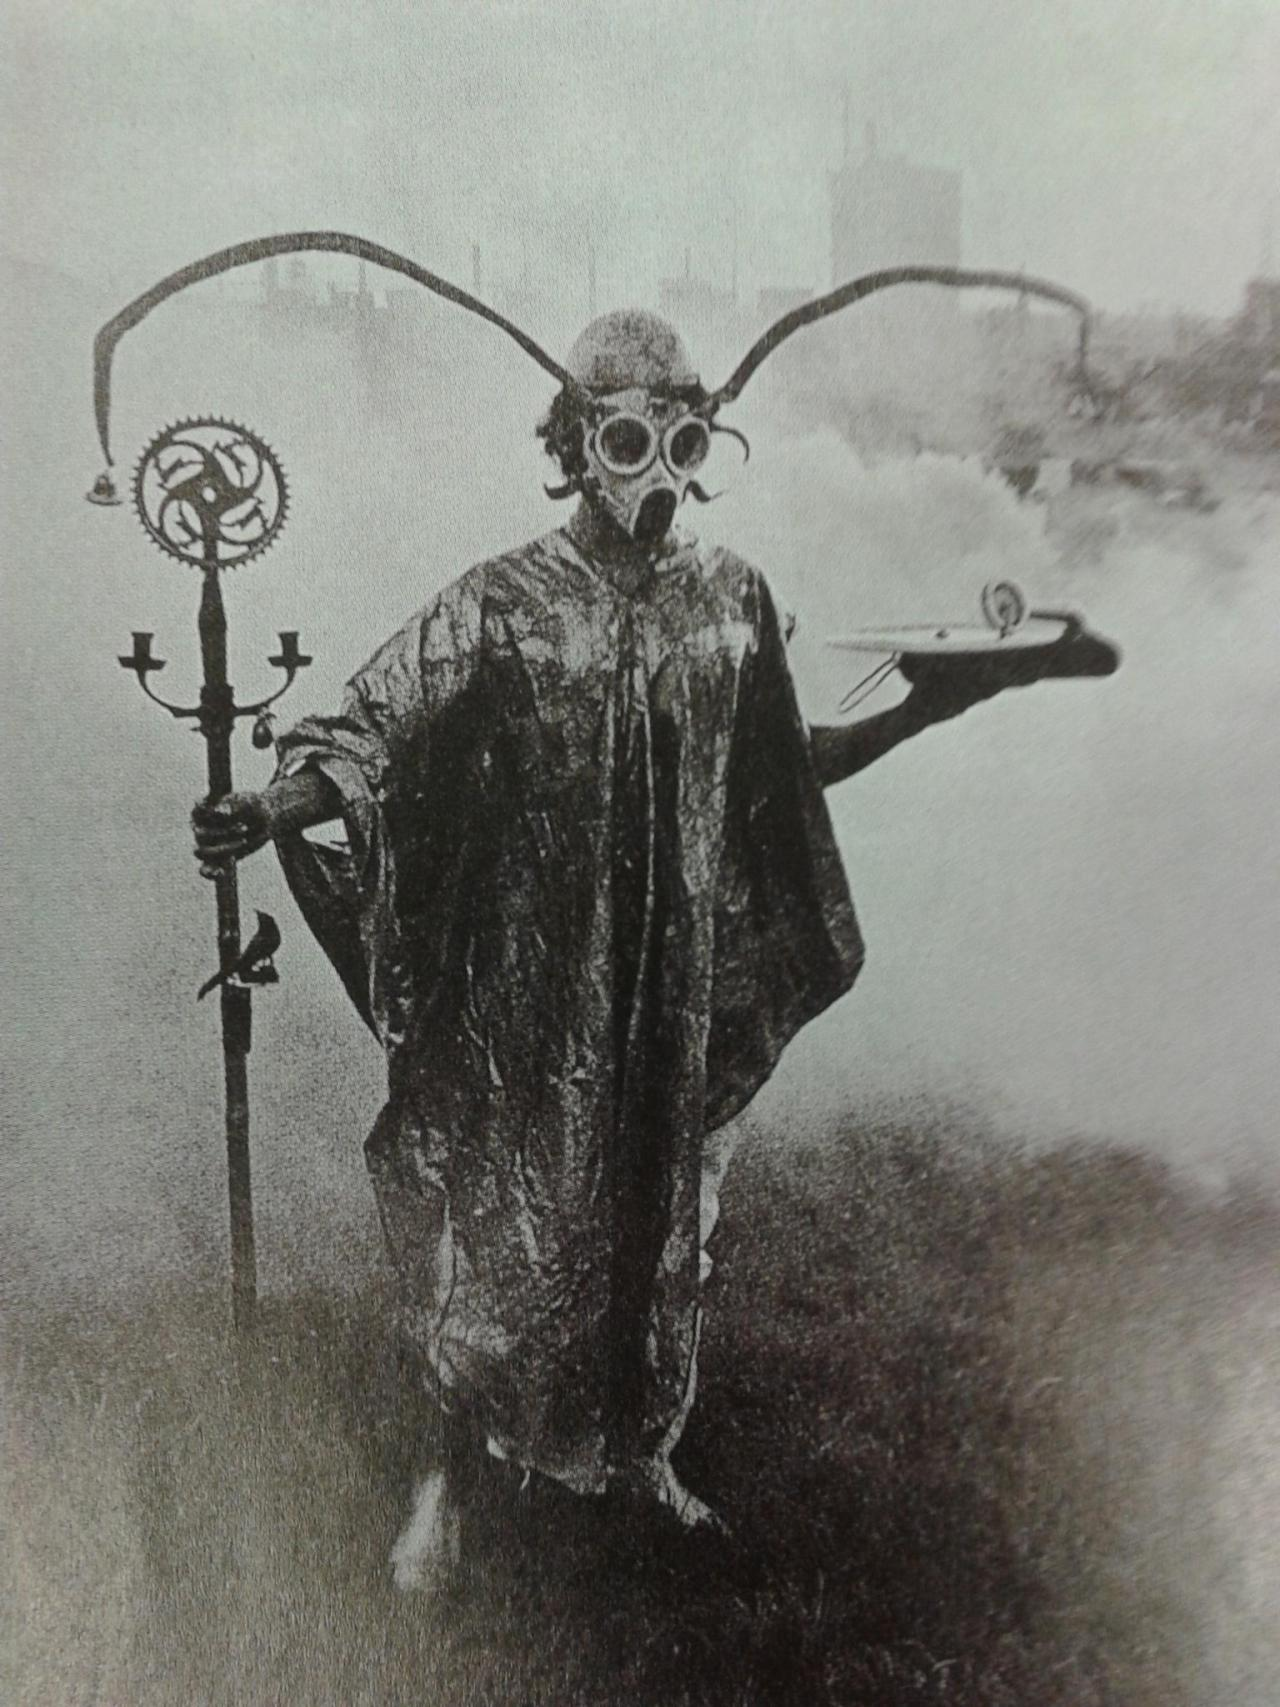 graveyarddust:  Urban Druid performing spirit sorcery in park, circa year 1900.